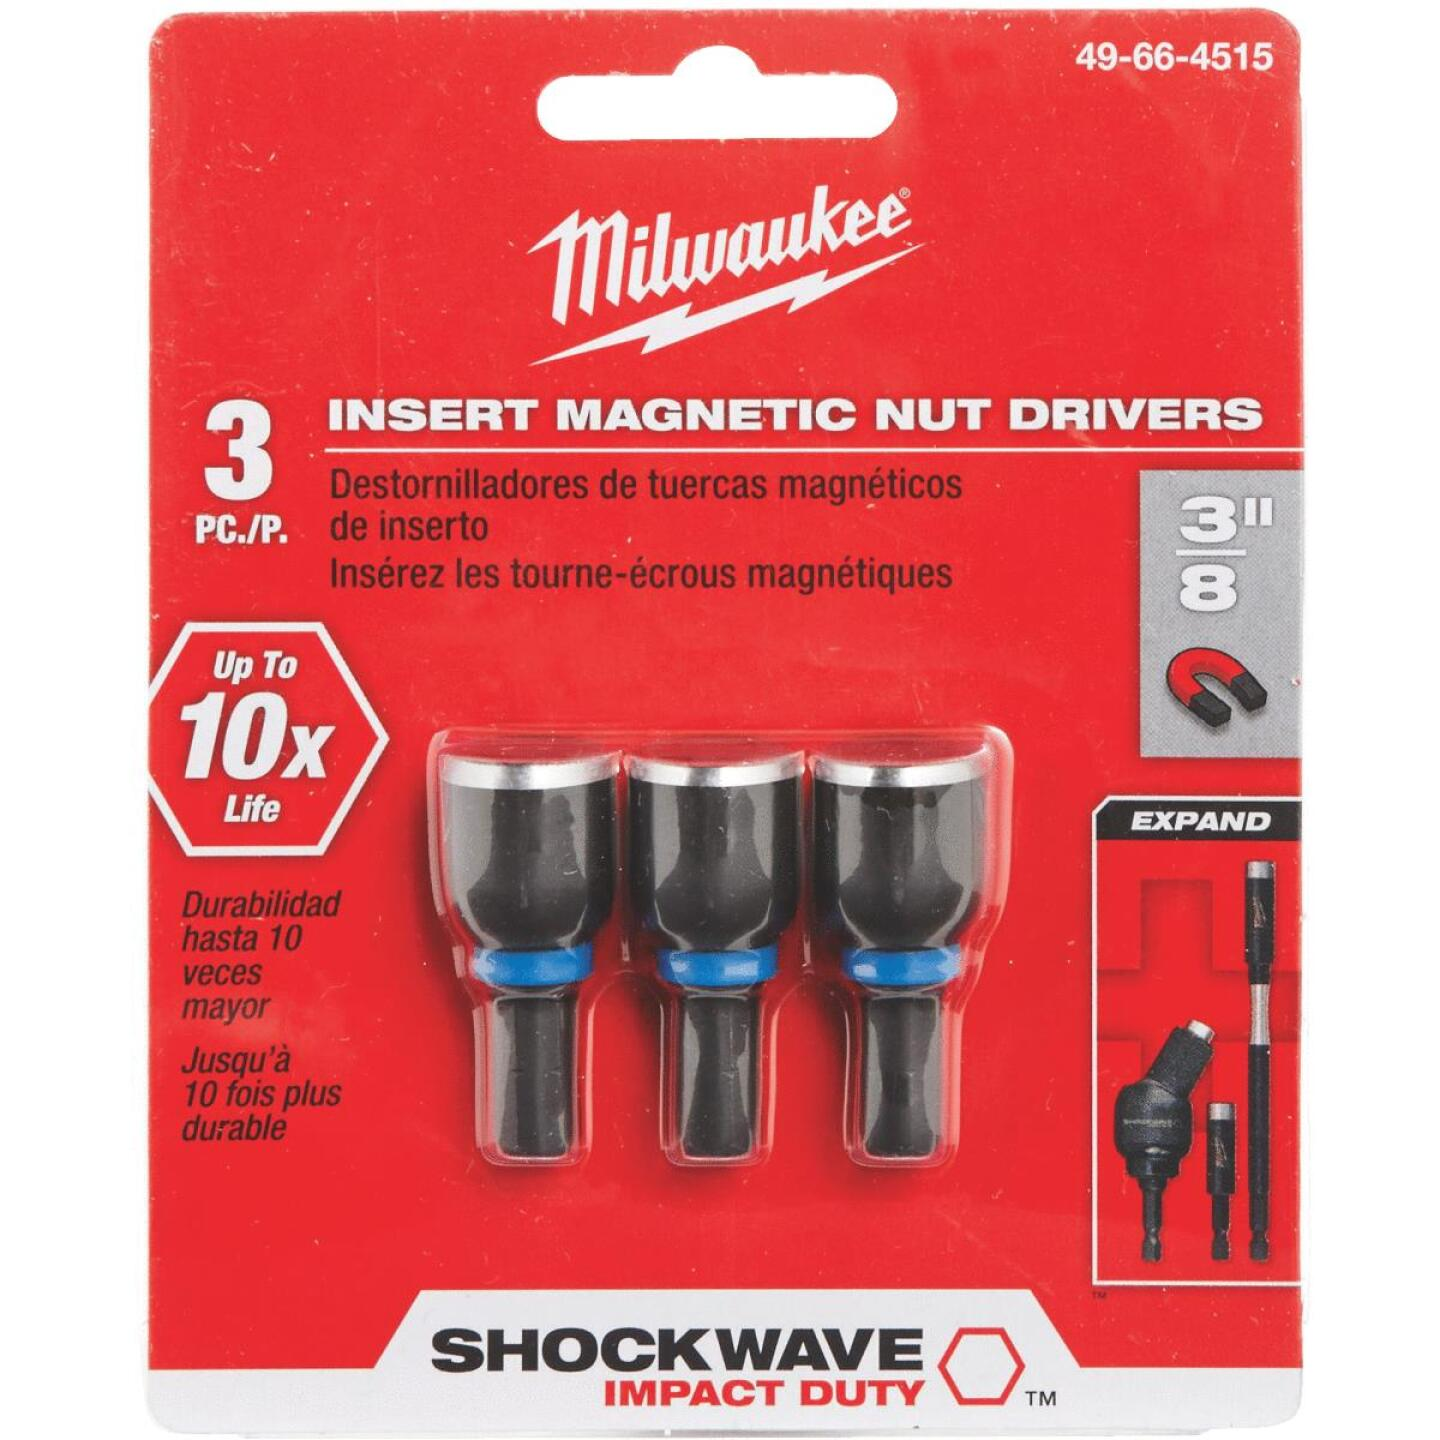 Milwaukee 3/8 In. x 1-1/2 In. Insert Impact Nutdriver, (3-Pack) Image 1